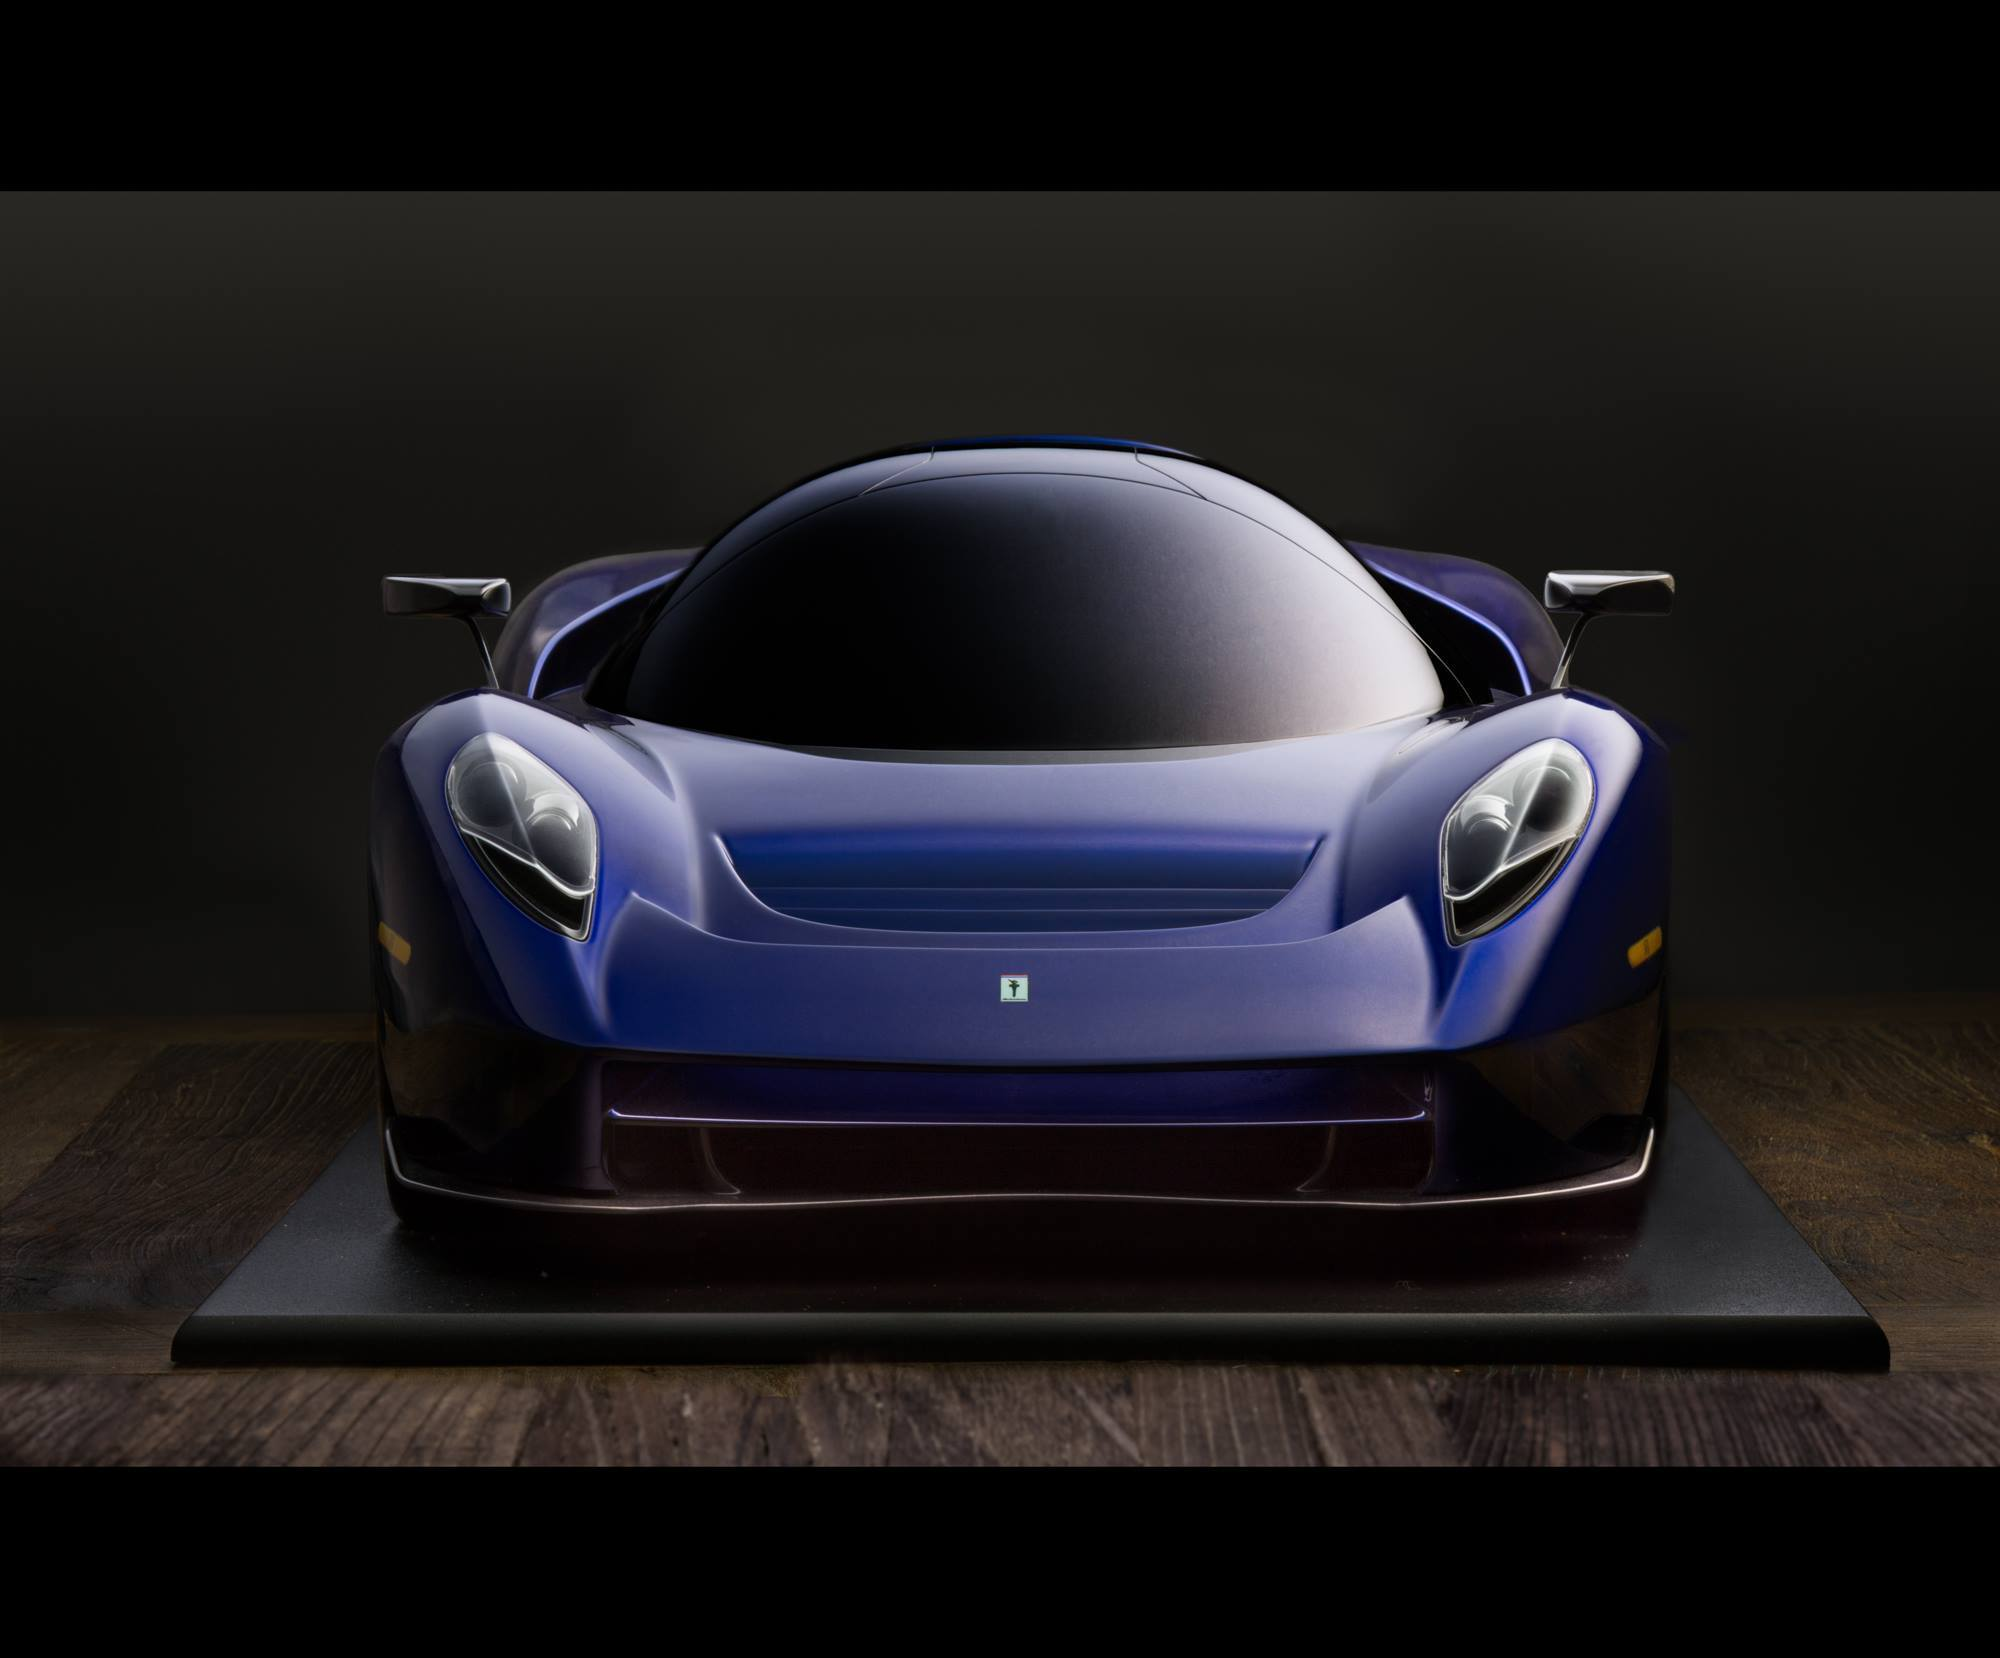 scuderia-cameron-glickenhaus-scg-004s-revealed-with-central-driving-position_3 Elegant Porsche 918 Spyder Nurburgring Lap Time Cars Trend